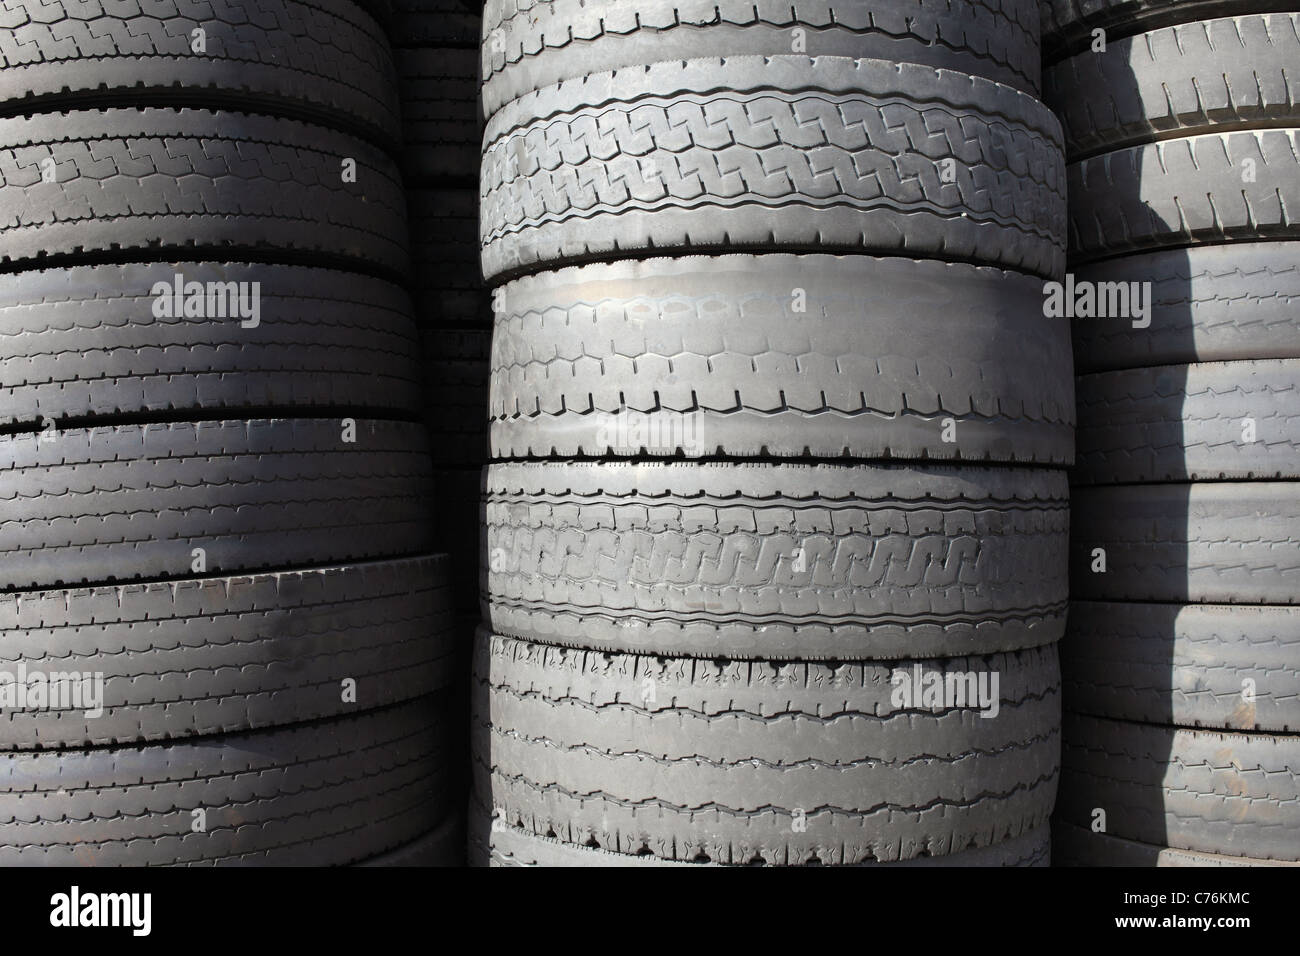 Pile Of Stacked Old Tires For Rubber Recycling Stock Photo